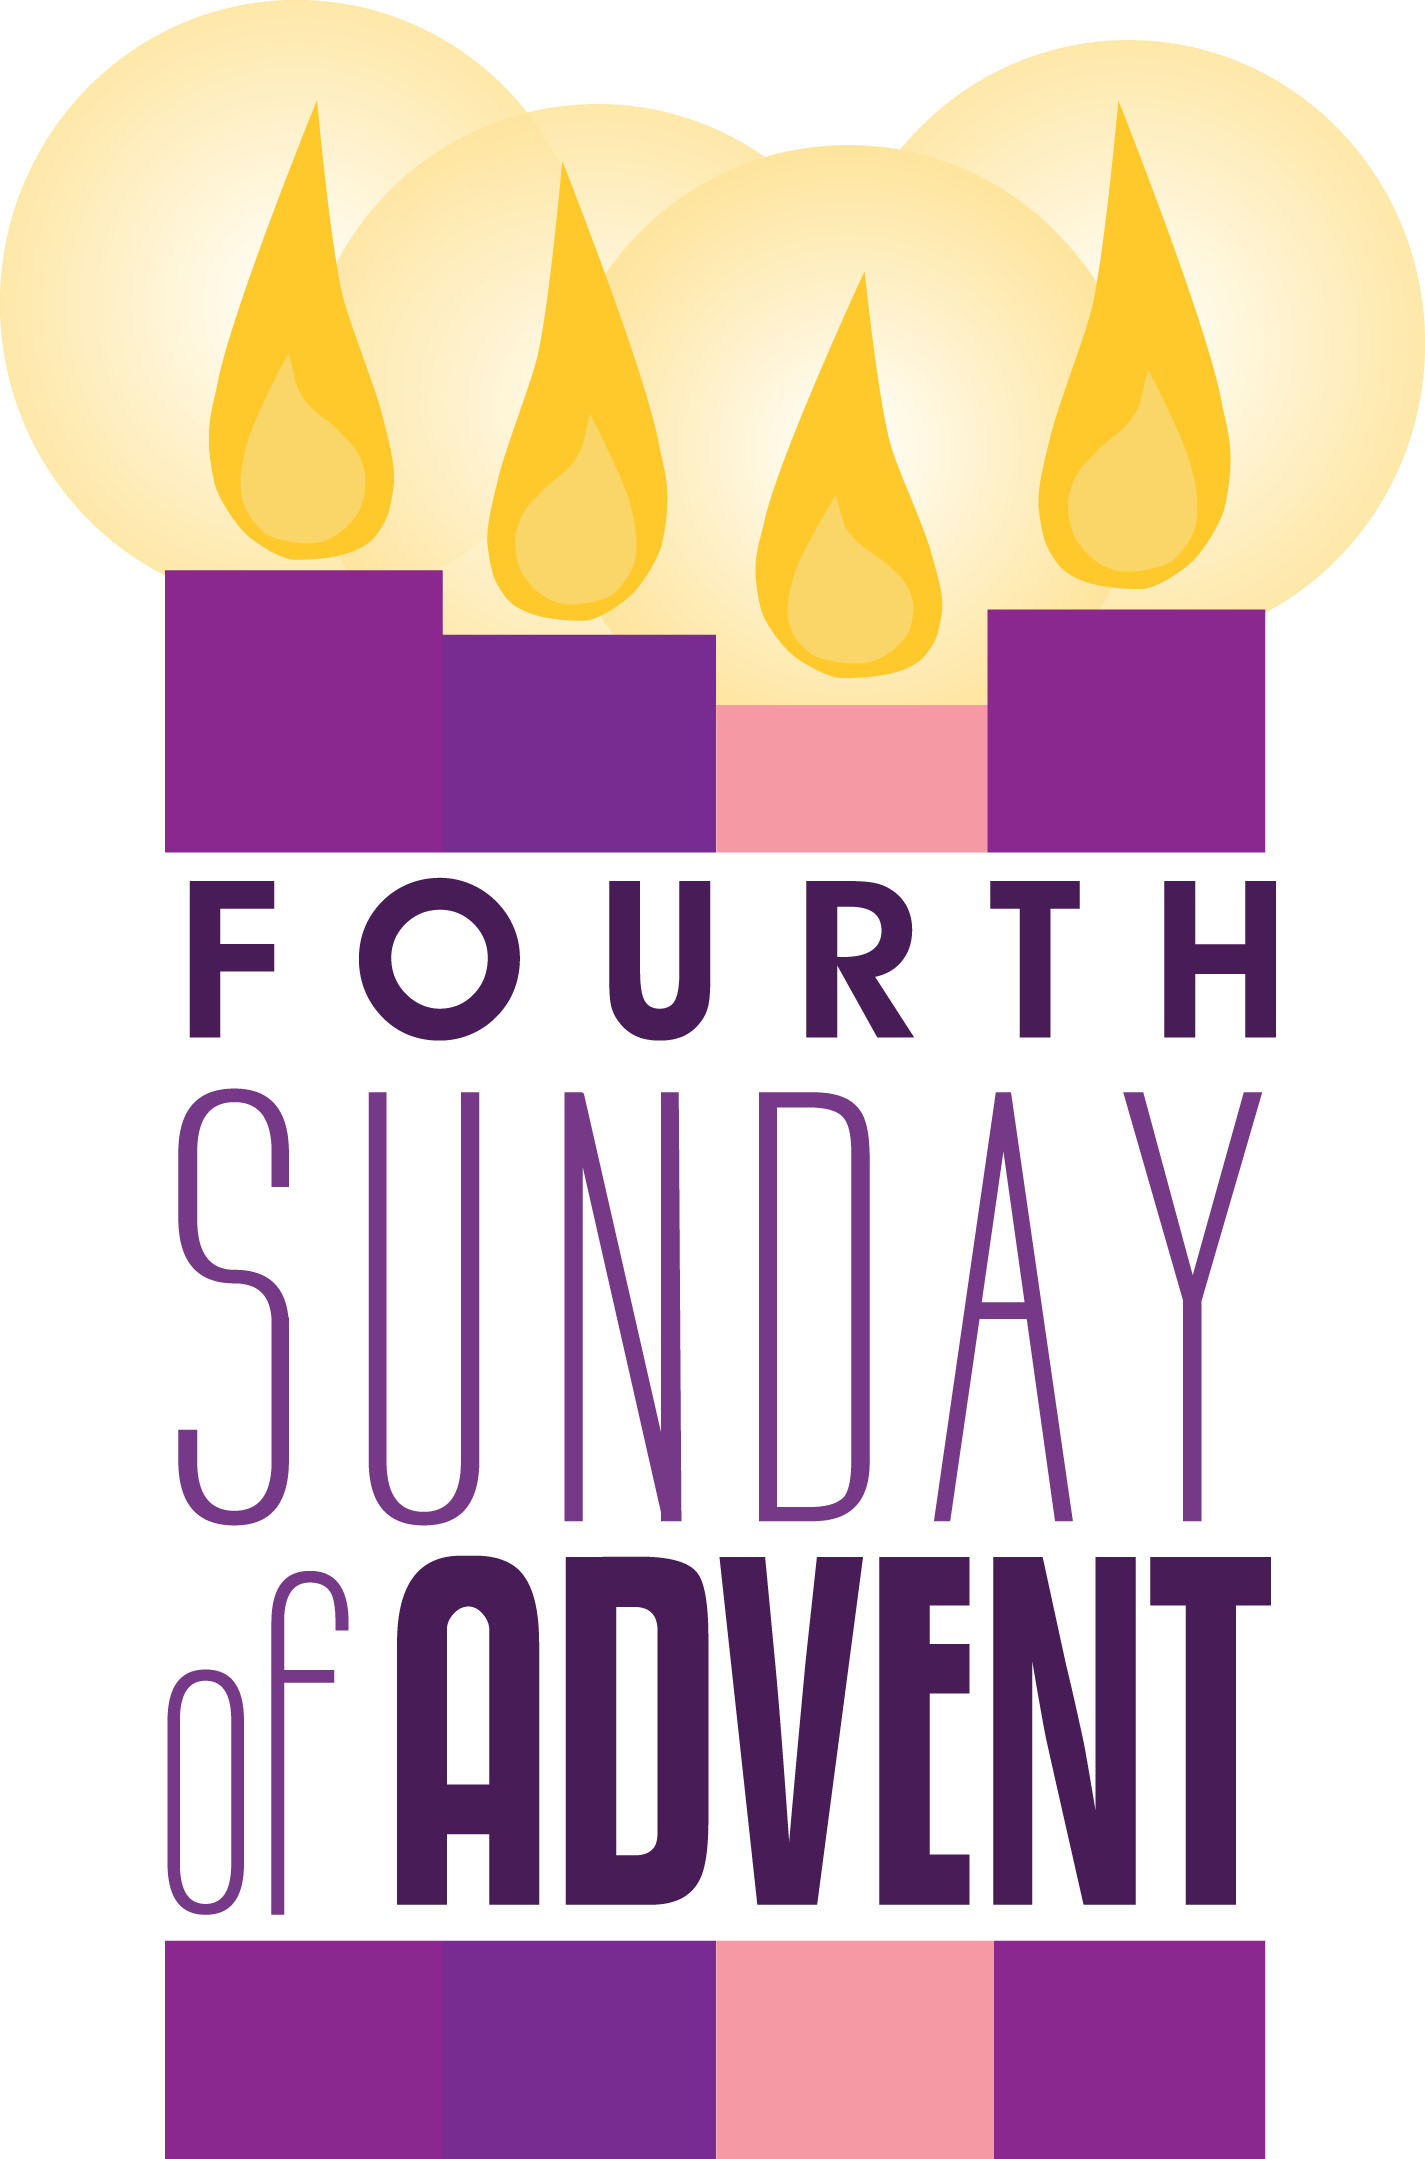 First sunday lent clipart.